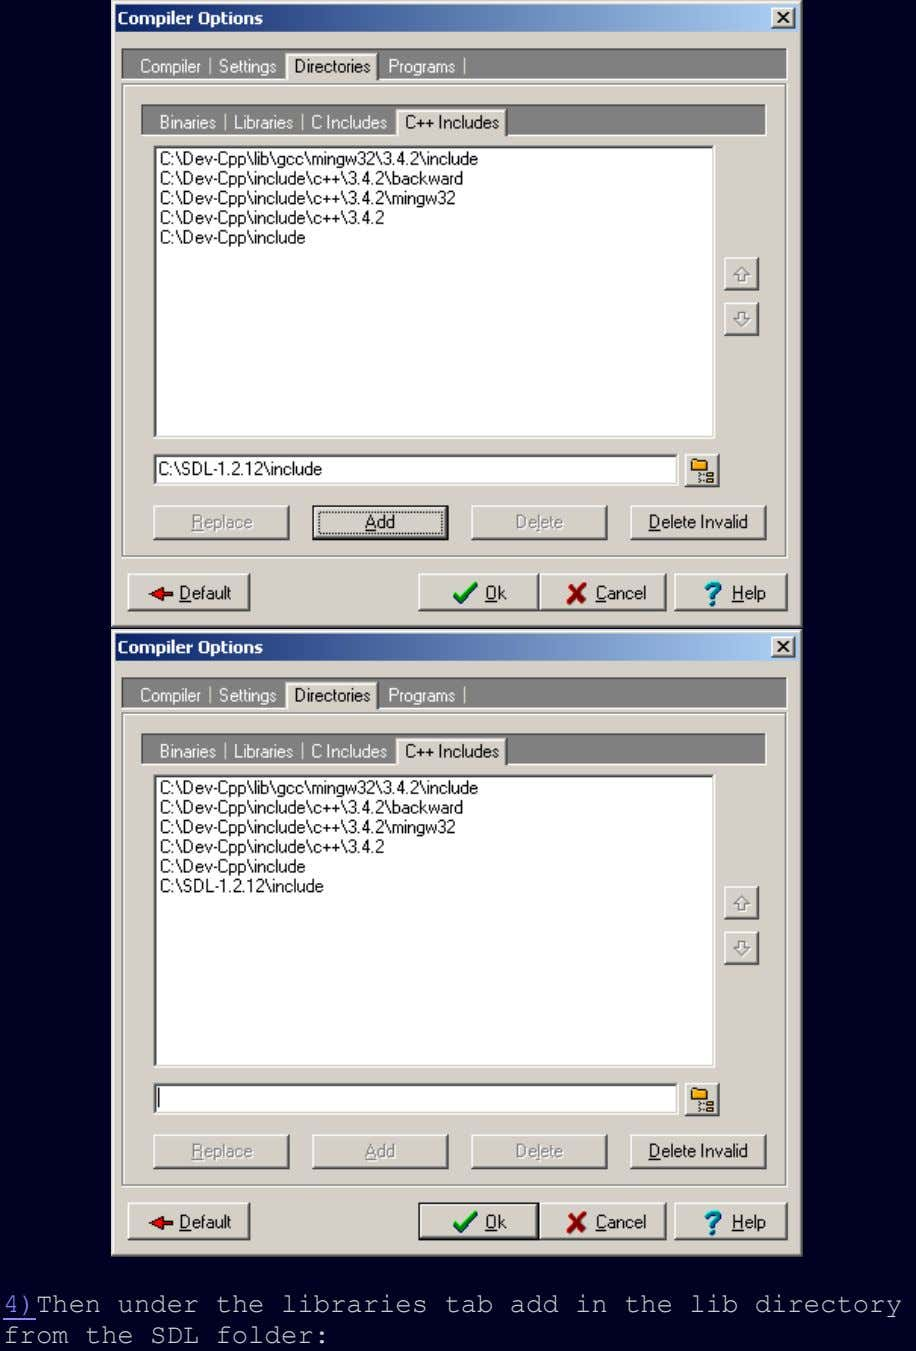 4)Then under the libraries tab add in the lib directory from the SDL folder: